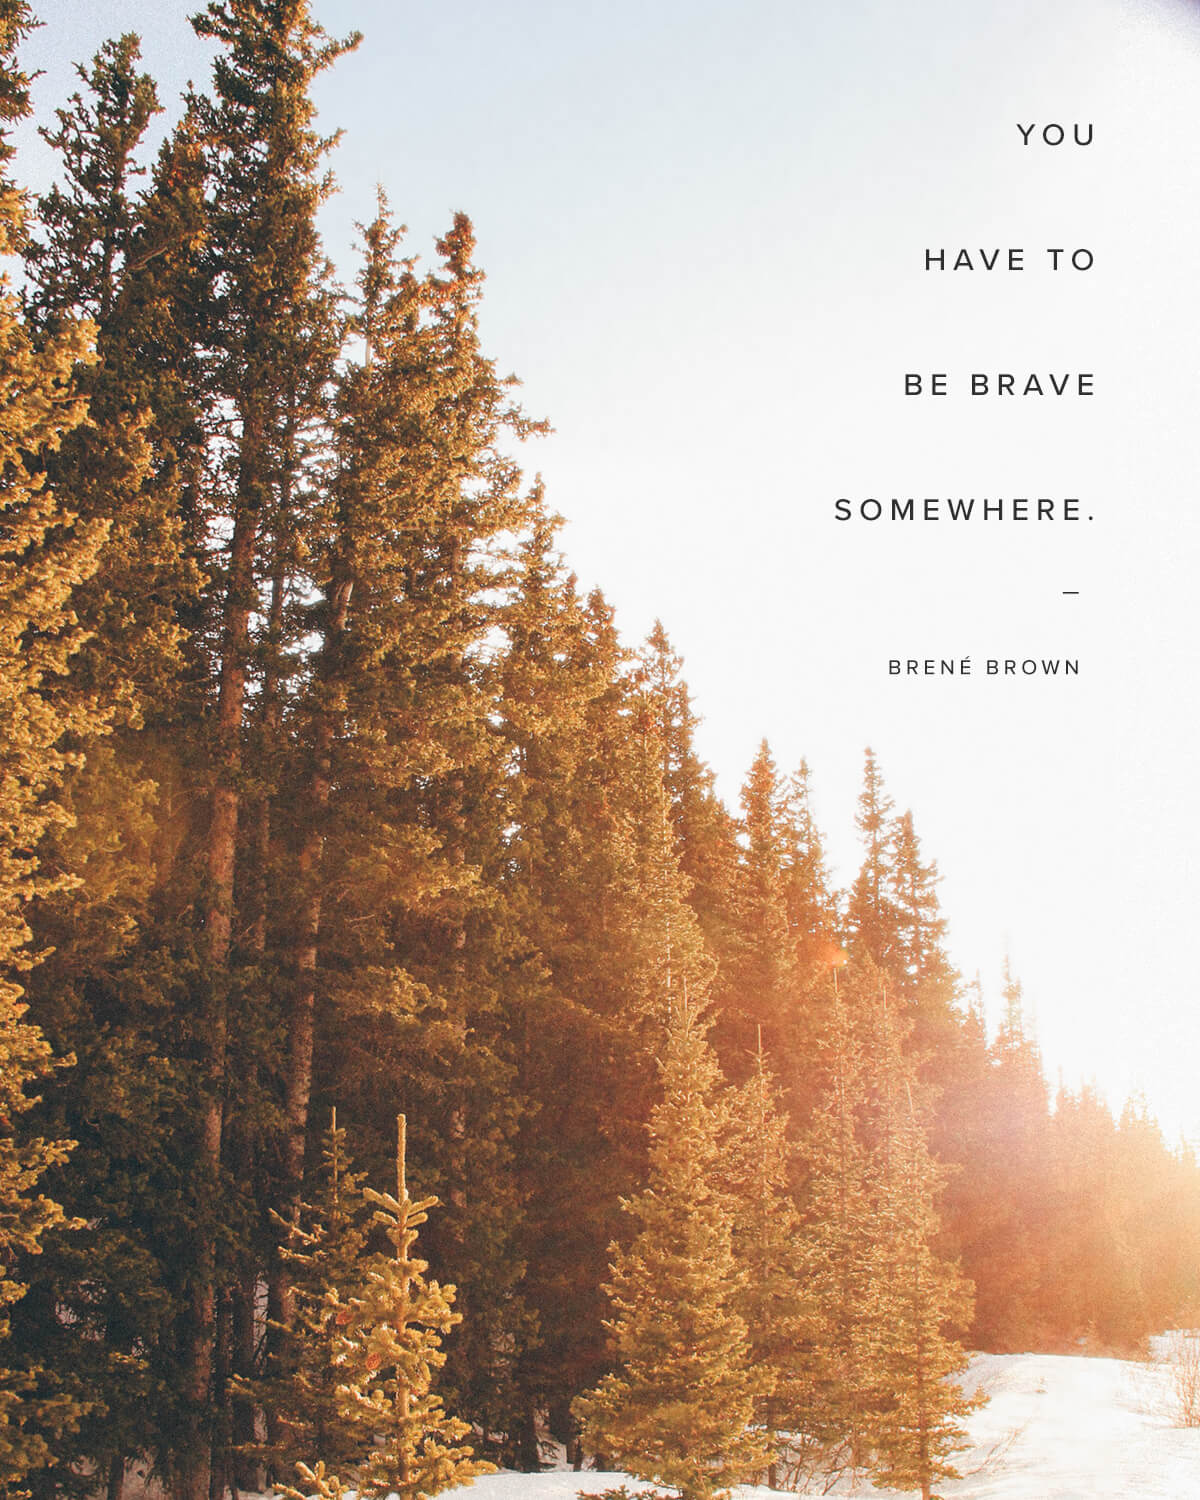 You have to be brave somewhere